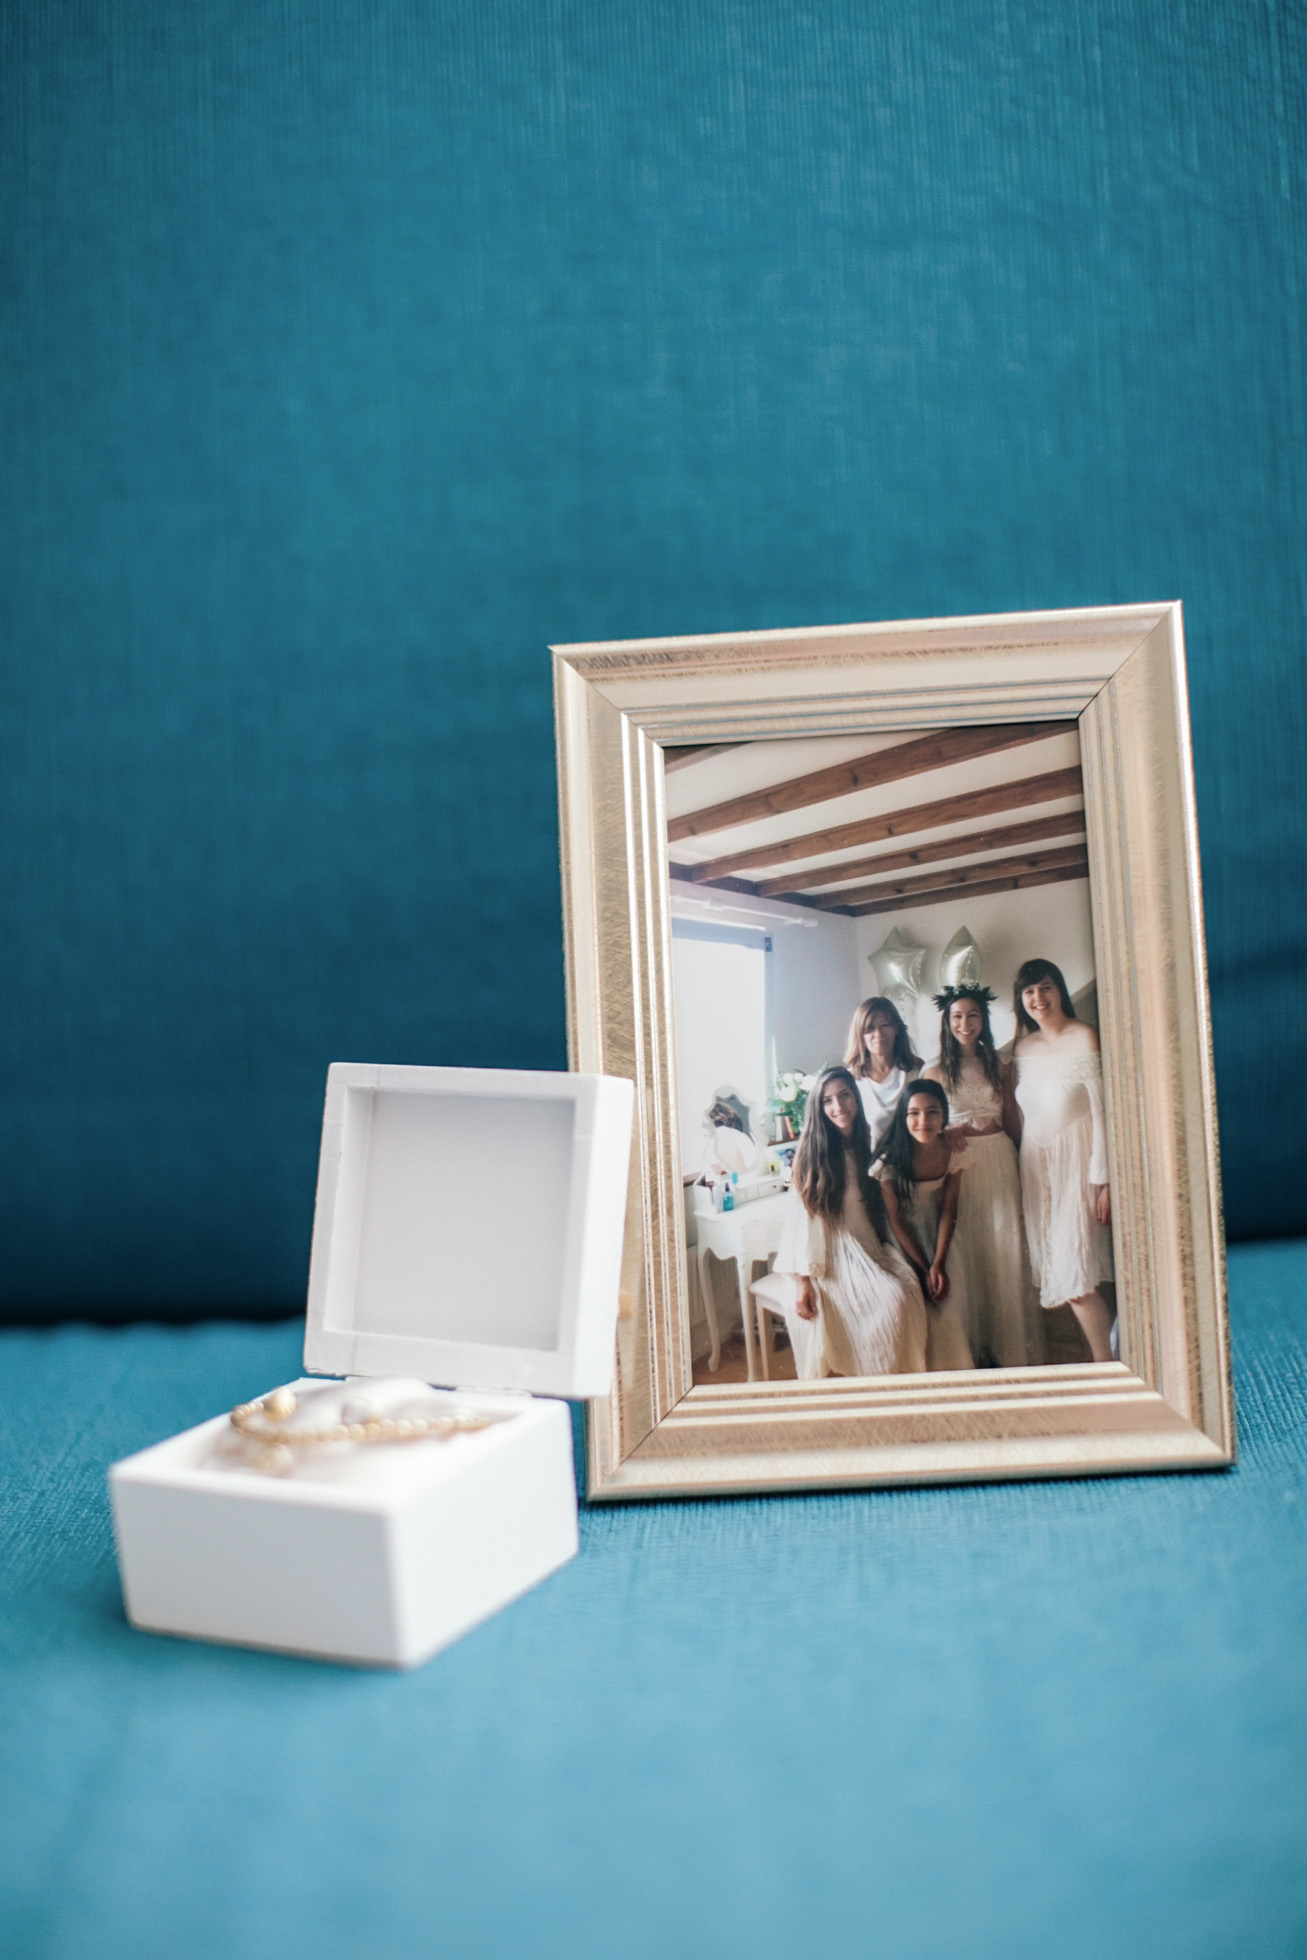 Bridesmaids' favors and a photo frame with image of the bride and her bridesmaids earlier that year when shopping for wedding dresses together.